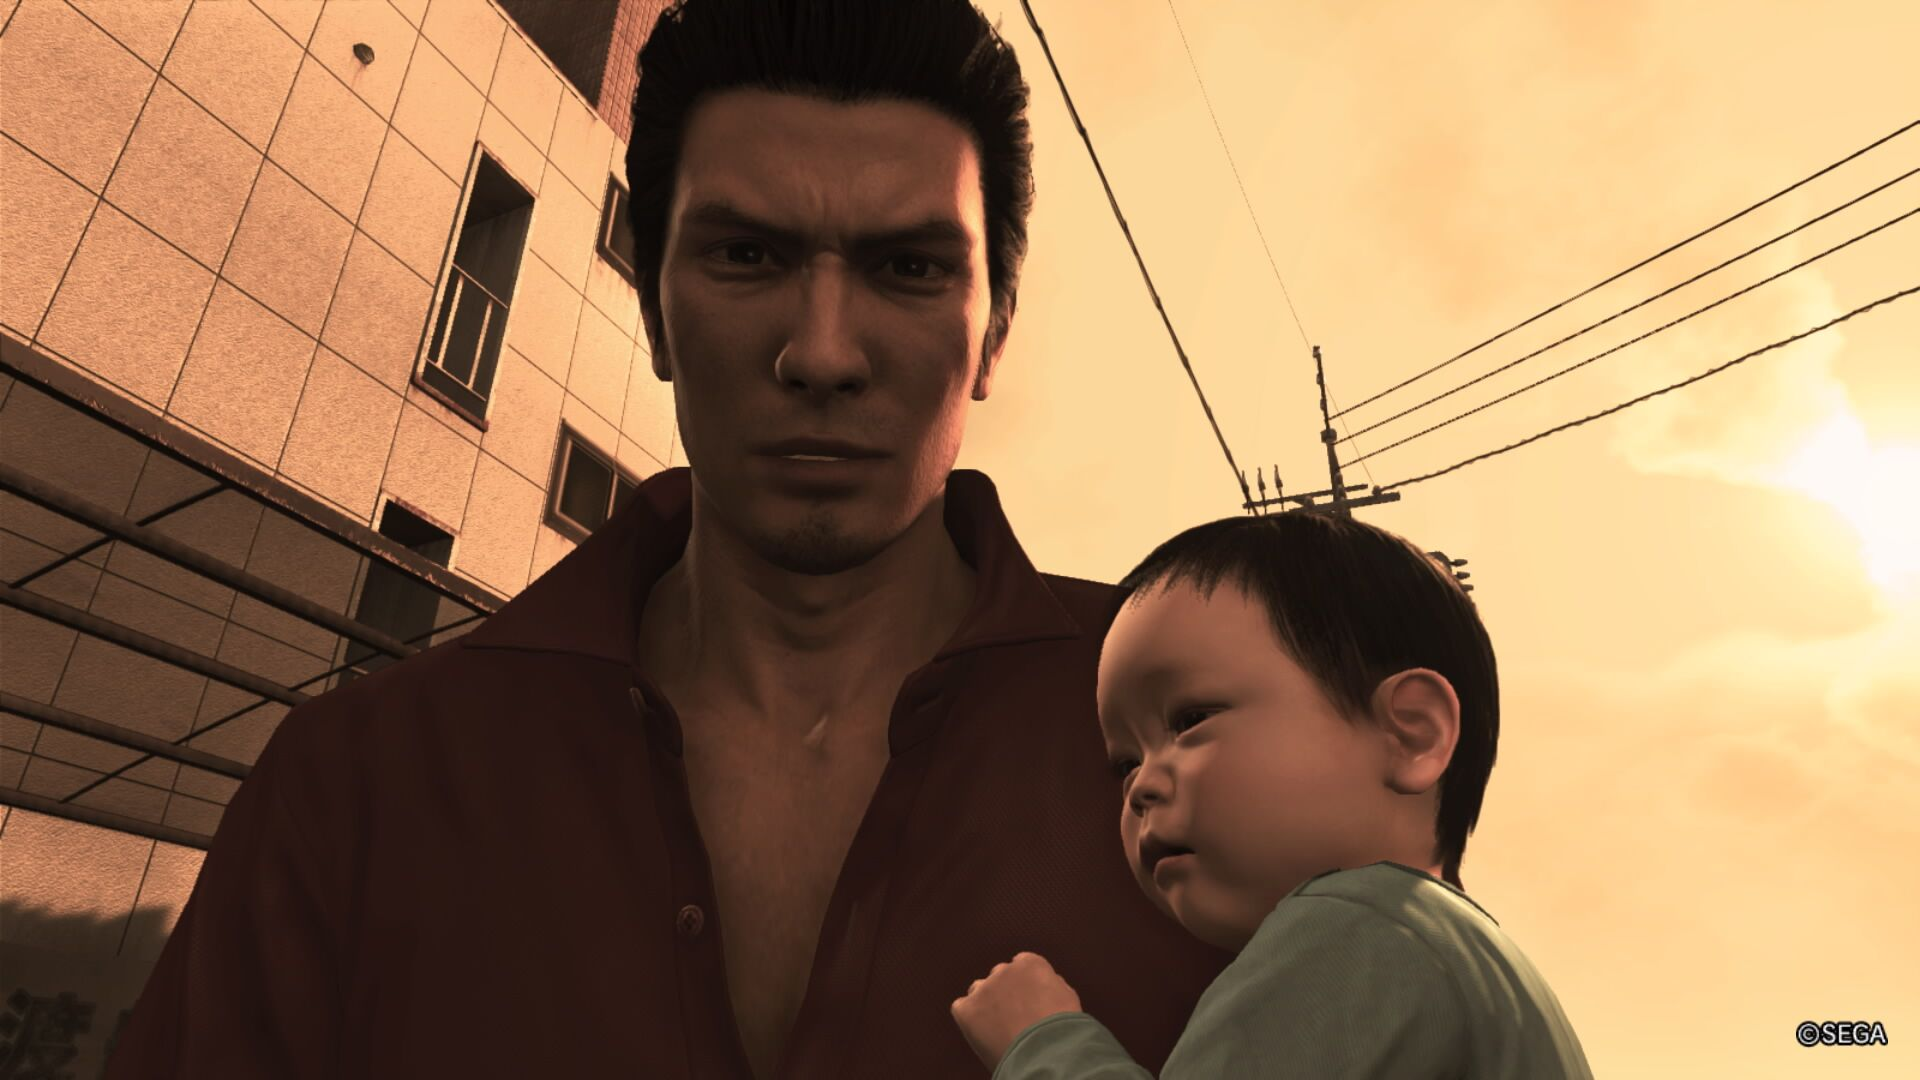 Yakuza 6 review: The father, the son and the song of life